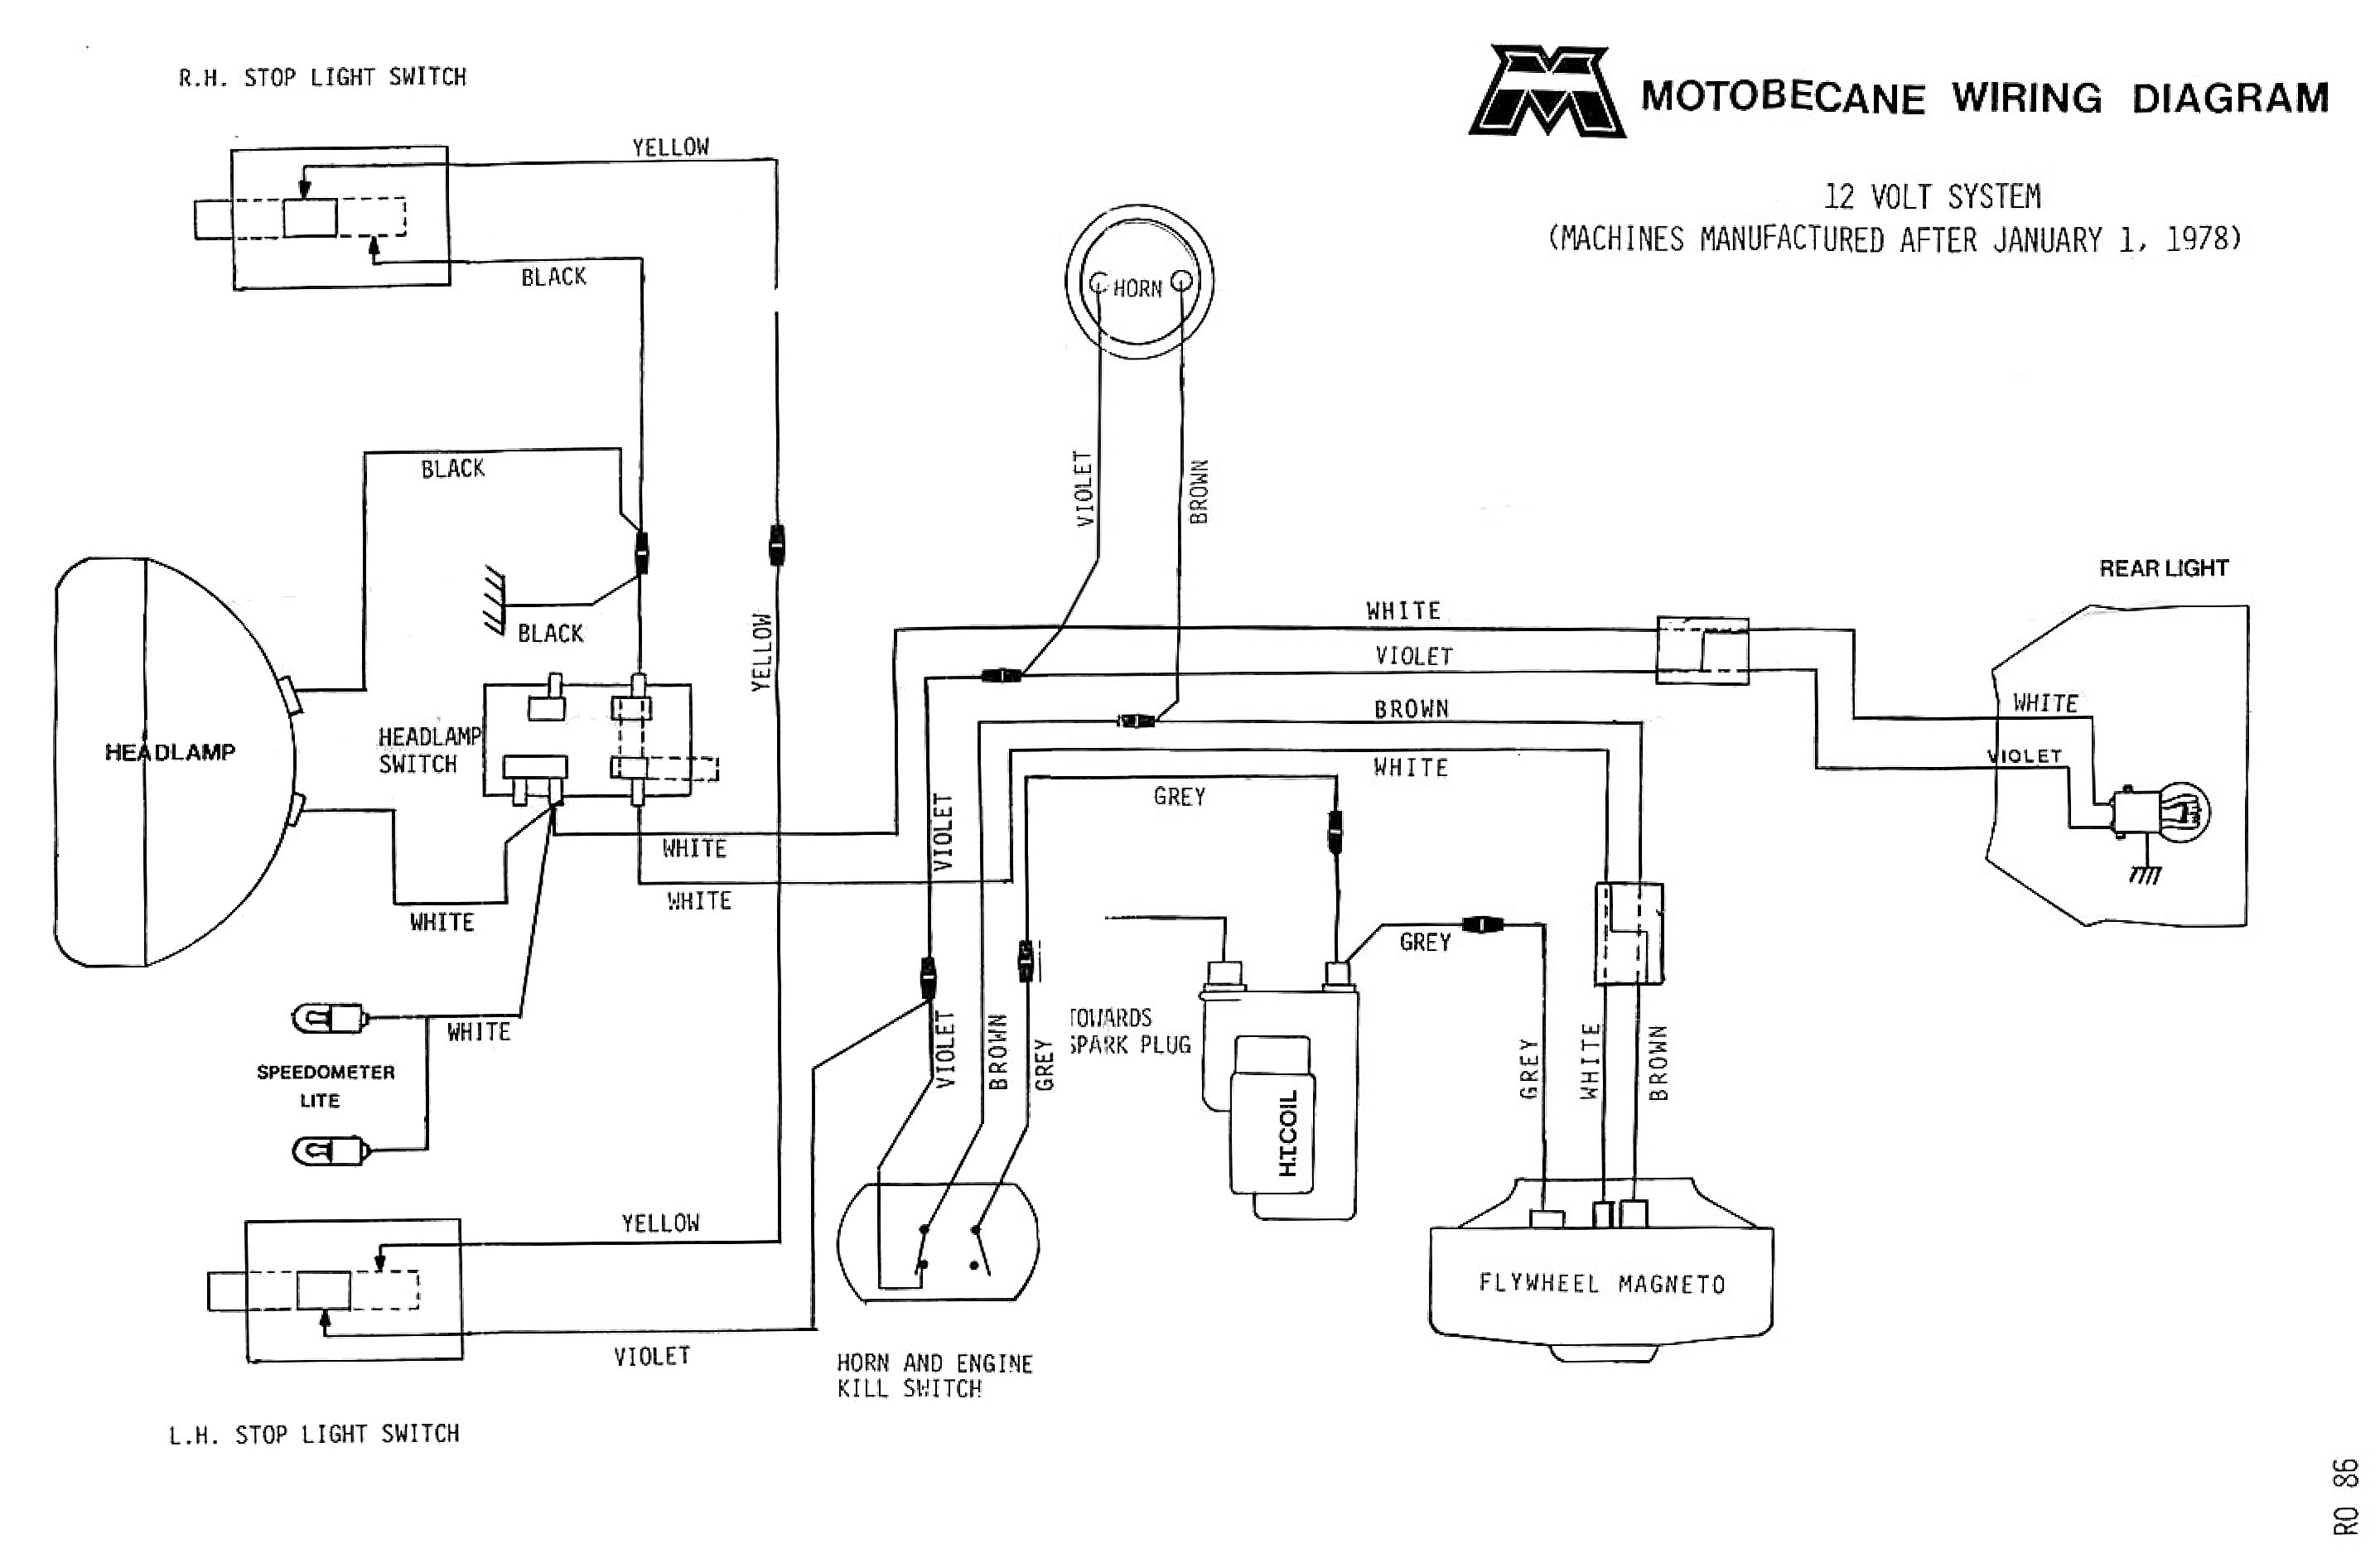 12v wiring diagram ford 800 tractor free picture 1953 ford 600 wiring diagram wiring diagram  1953 ford 600 wiring diagram wiring